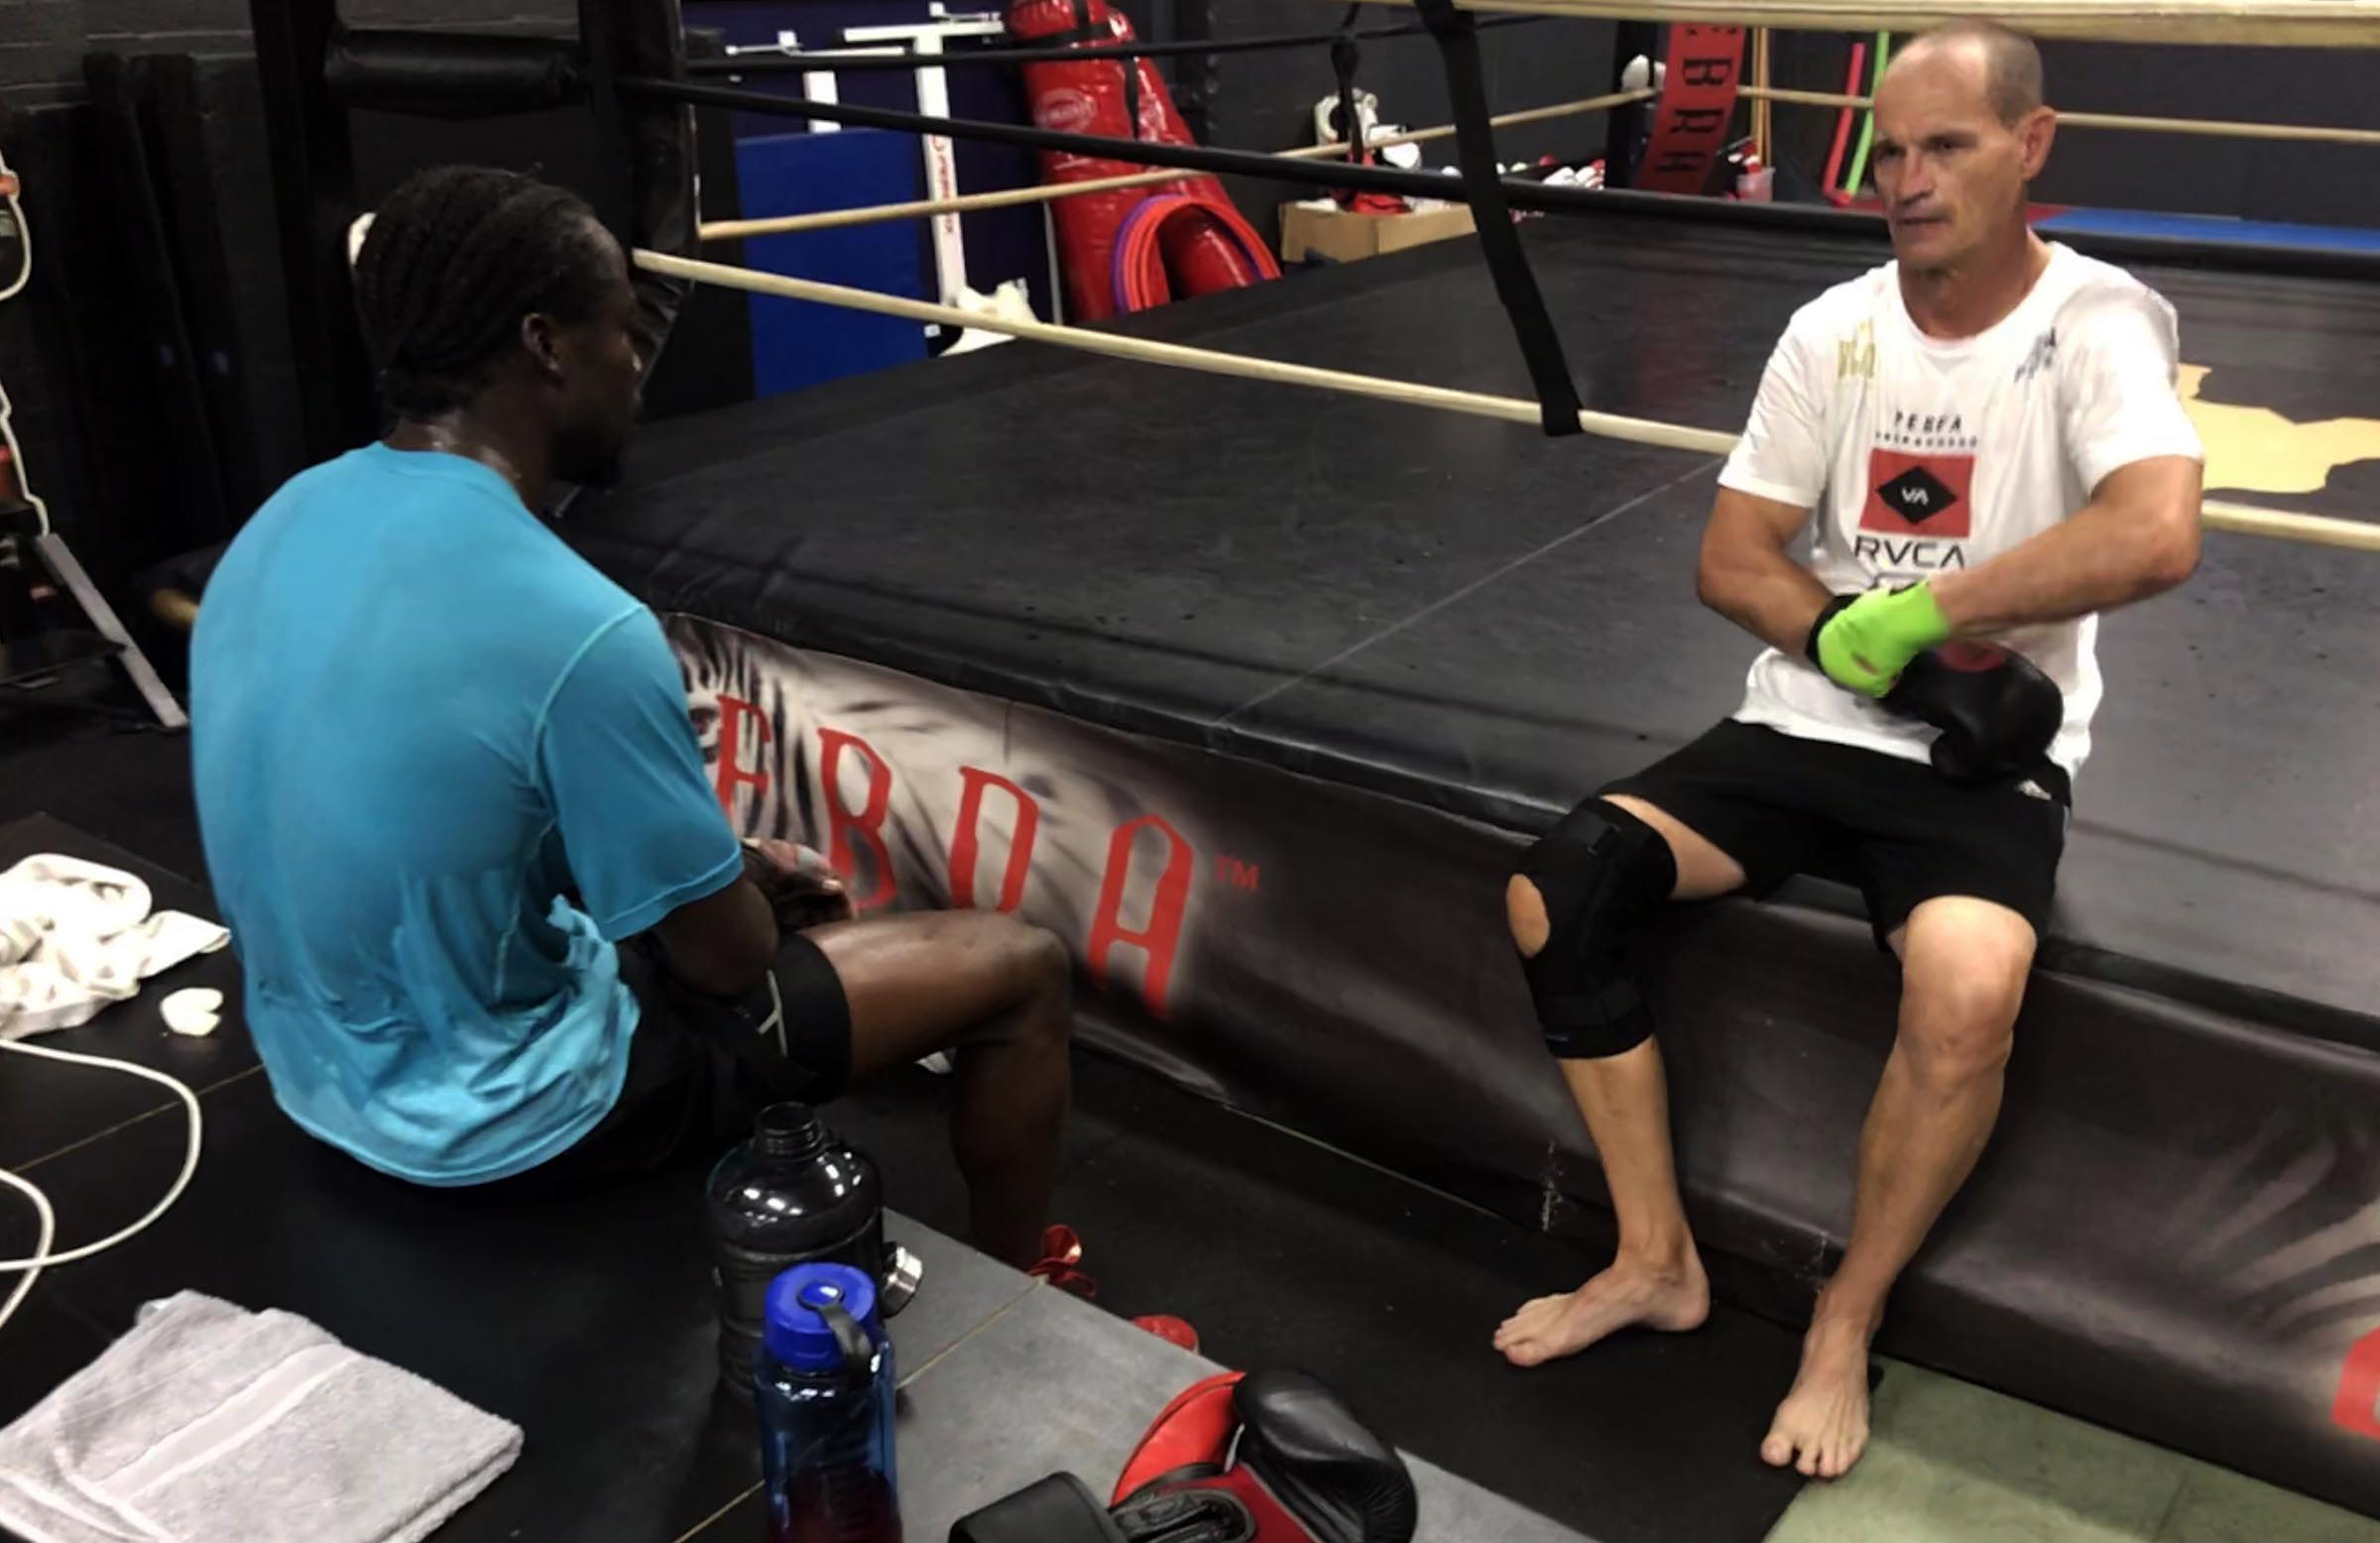 Wessels is preparing this fighter for an upcoming bout // cricket.com.au